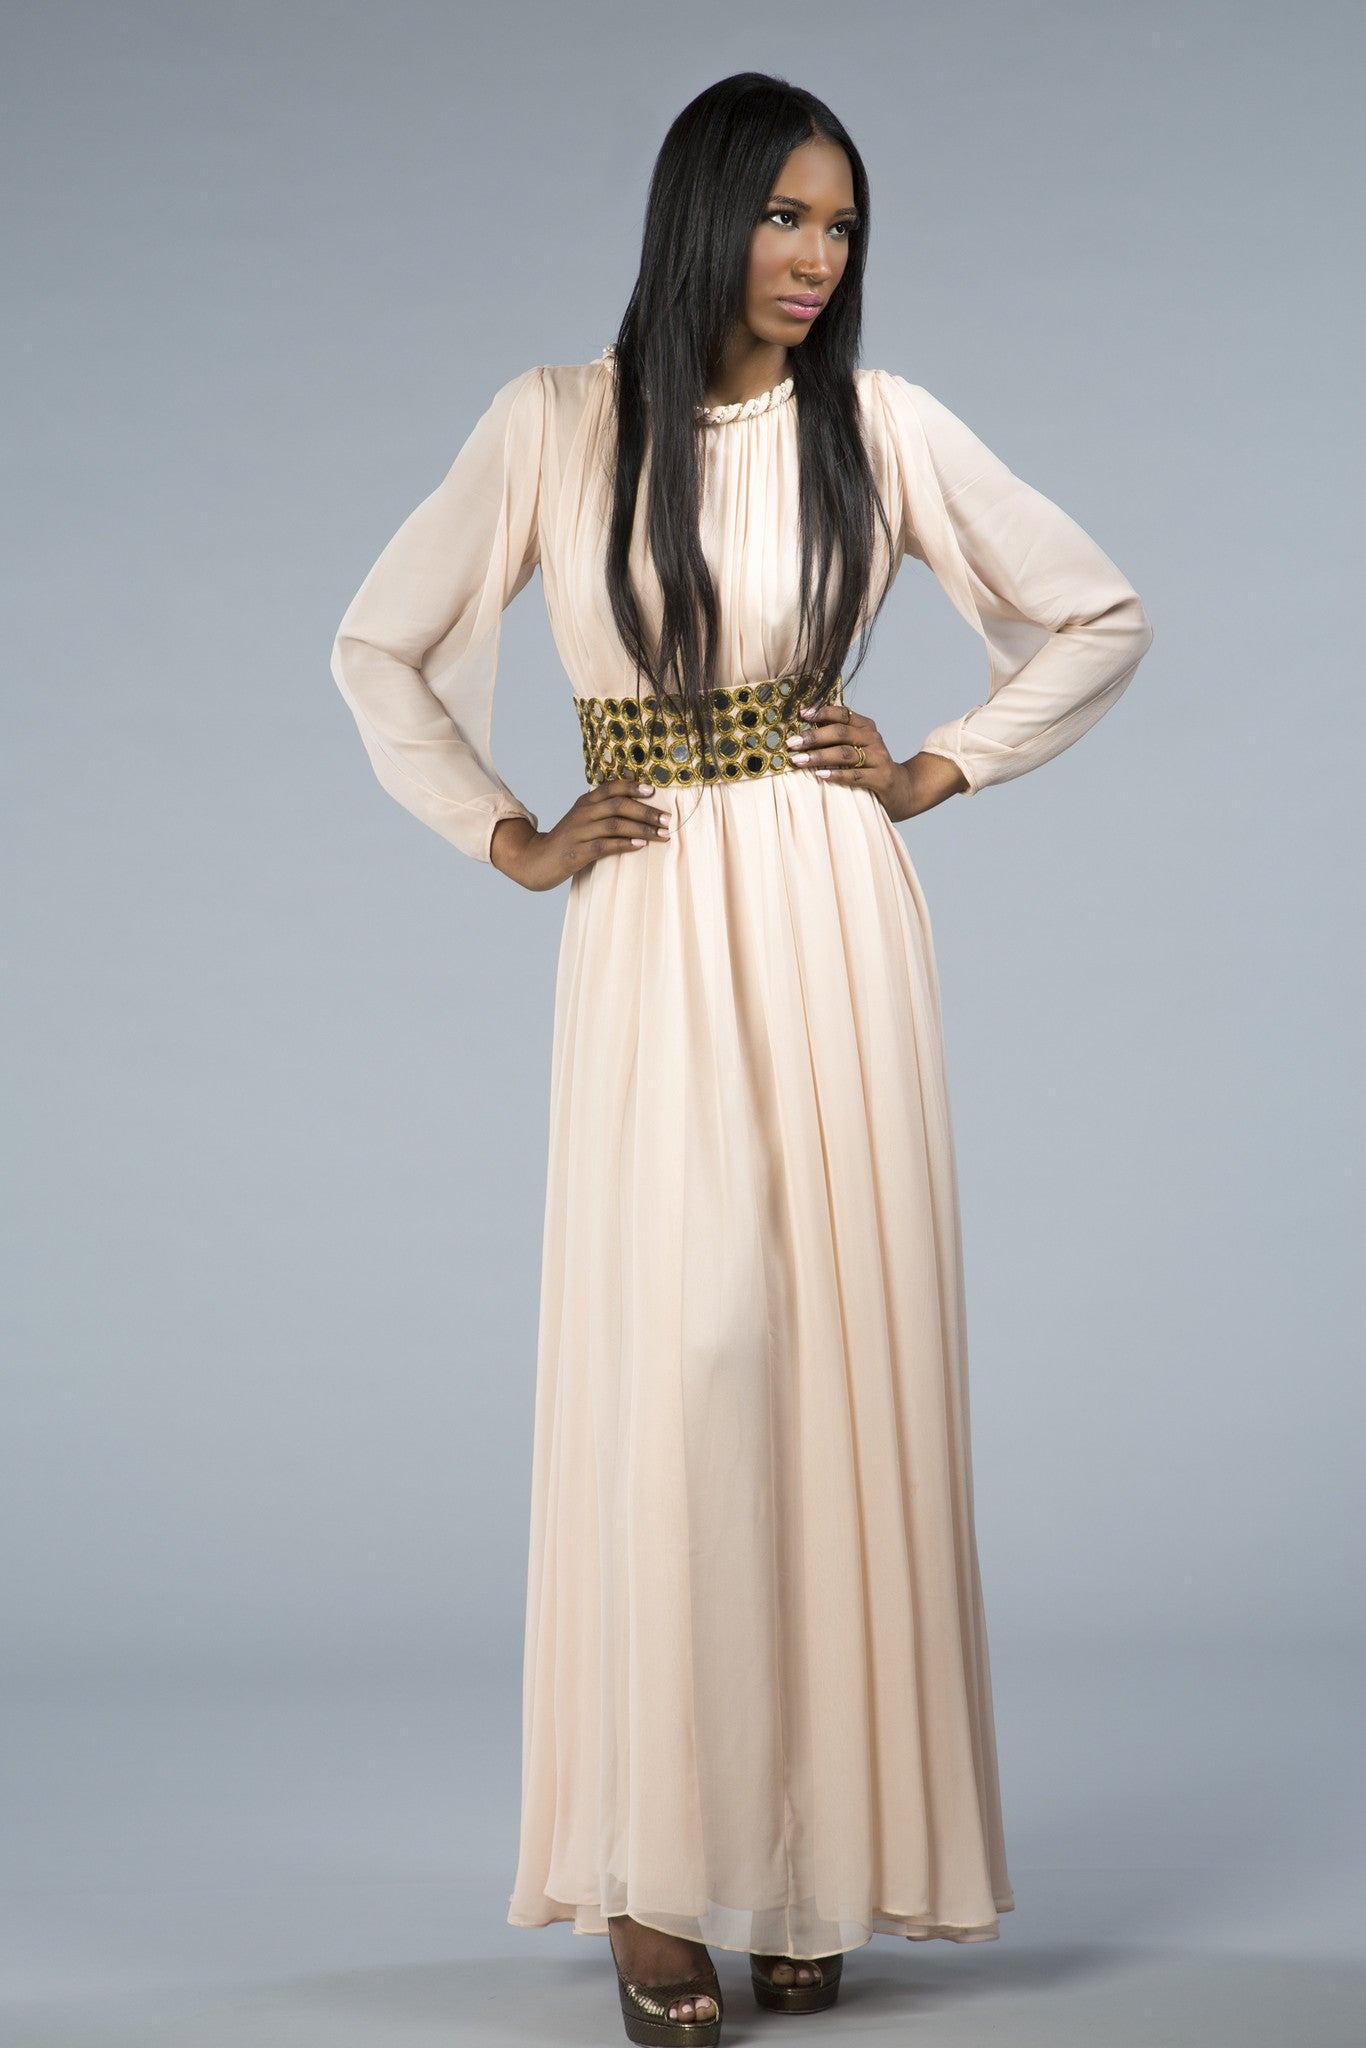 Light flowing gown, slit sleeves, embellished neck and belt with glass